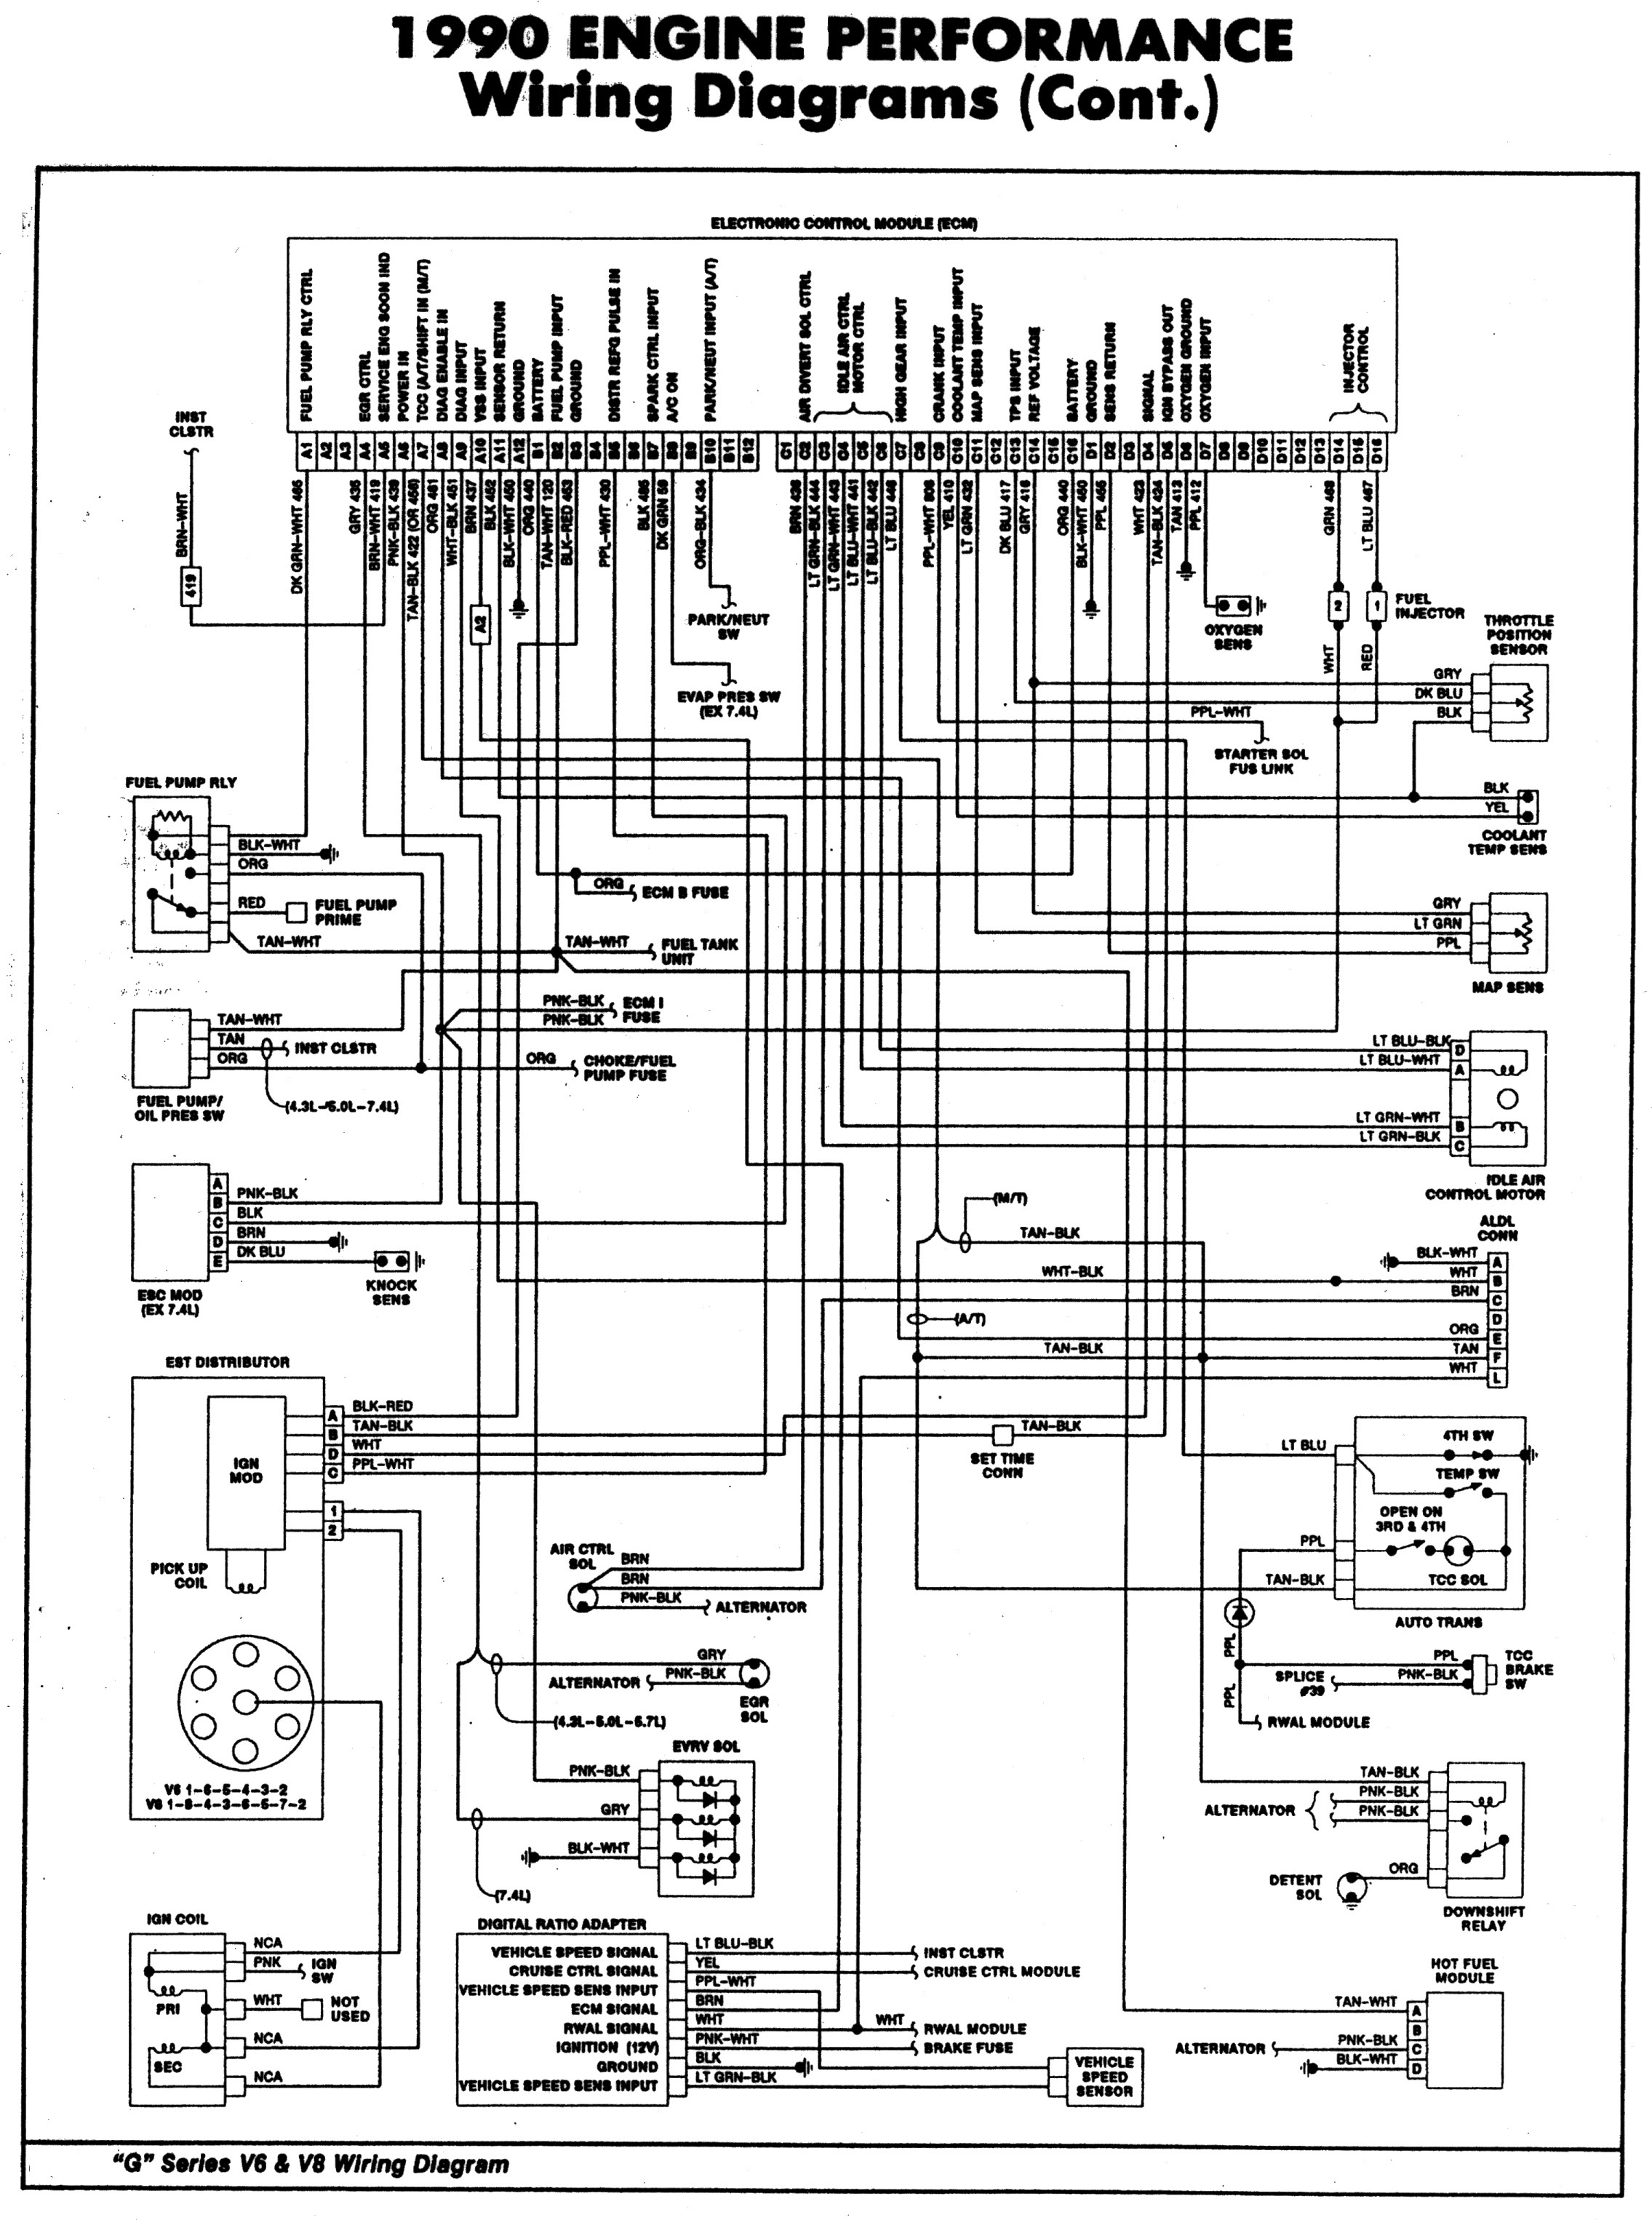 hight resolution of 1990 chevy van wiring diagram wiring diagrams value 1990 g20 chevy van wiring diagrams